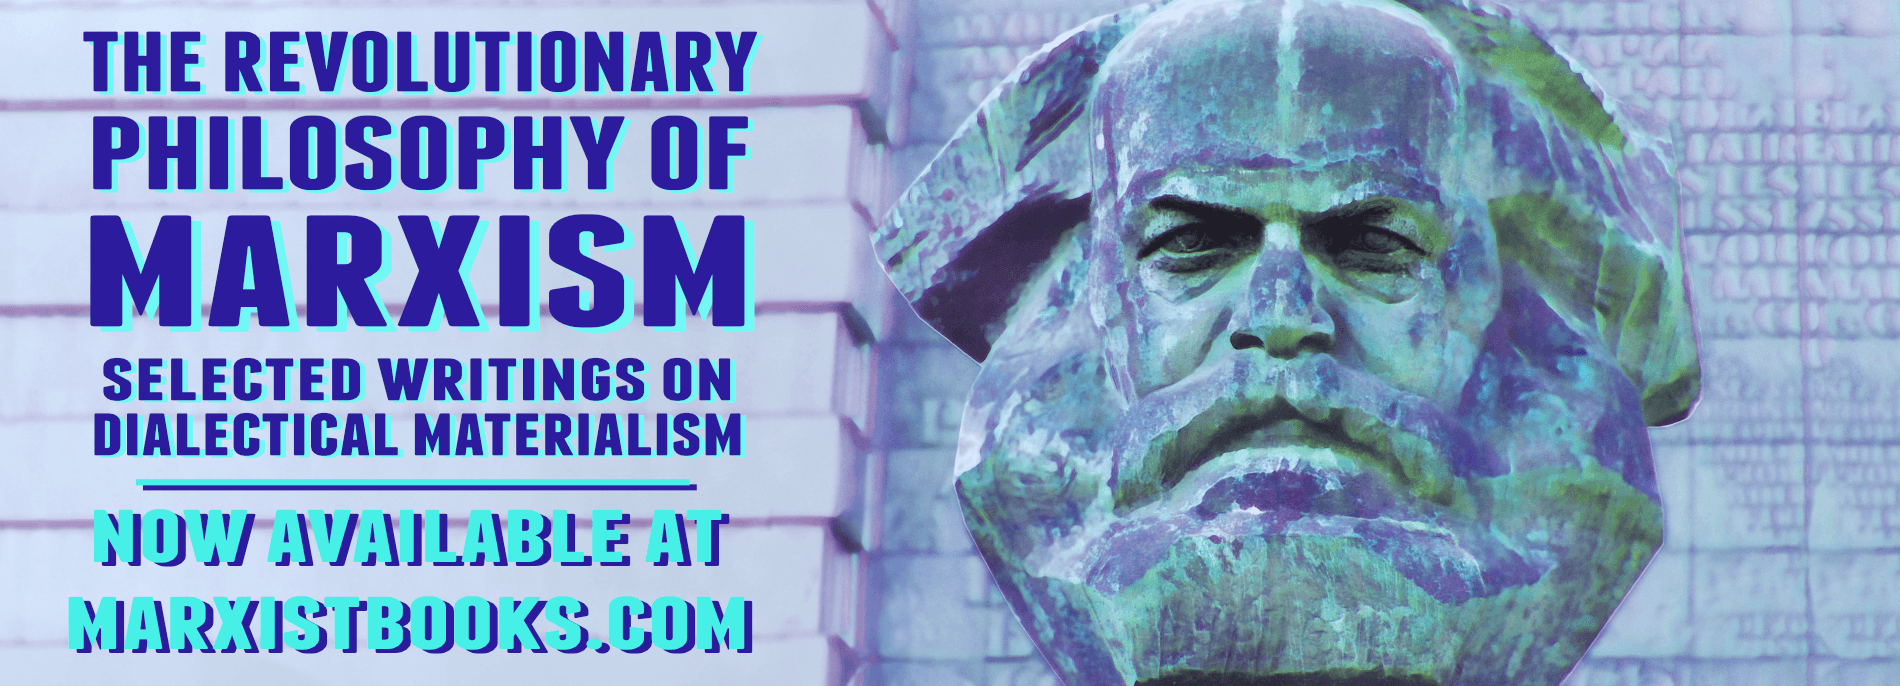 The Revolutionary Philosophy of Marxism Book